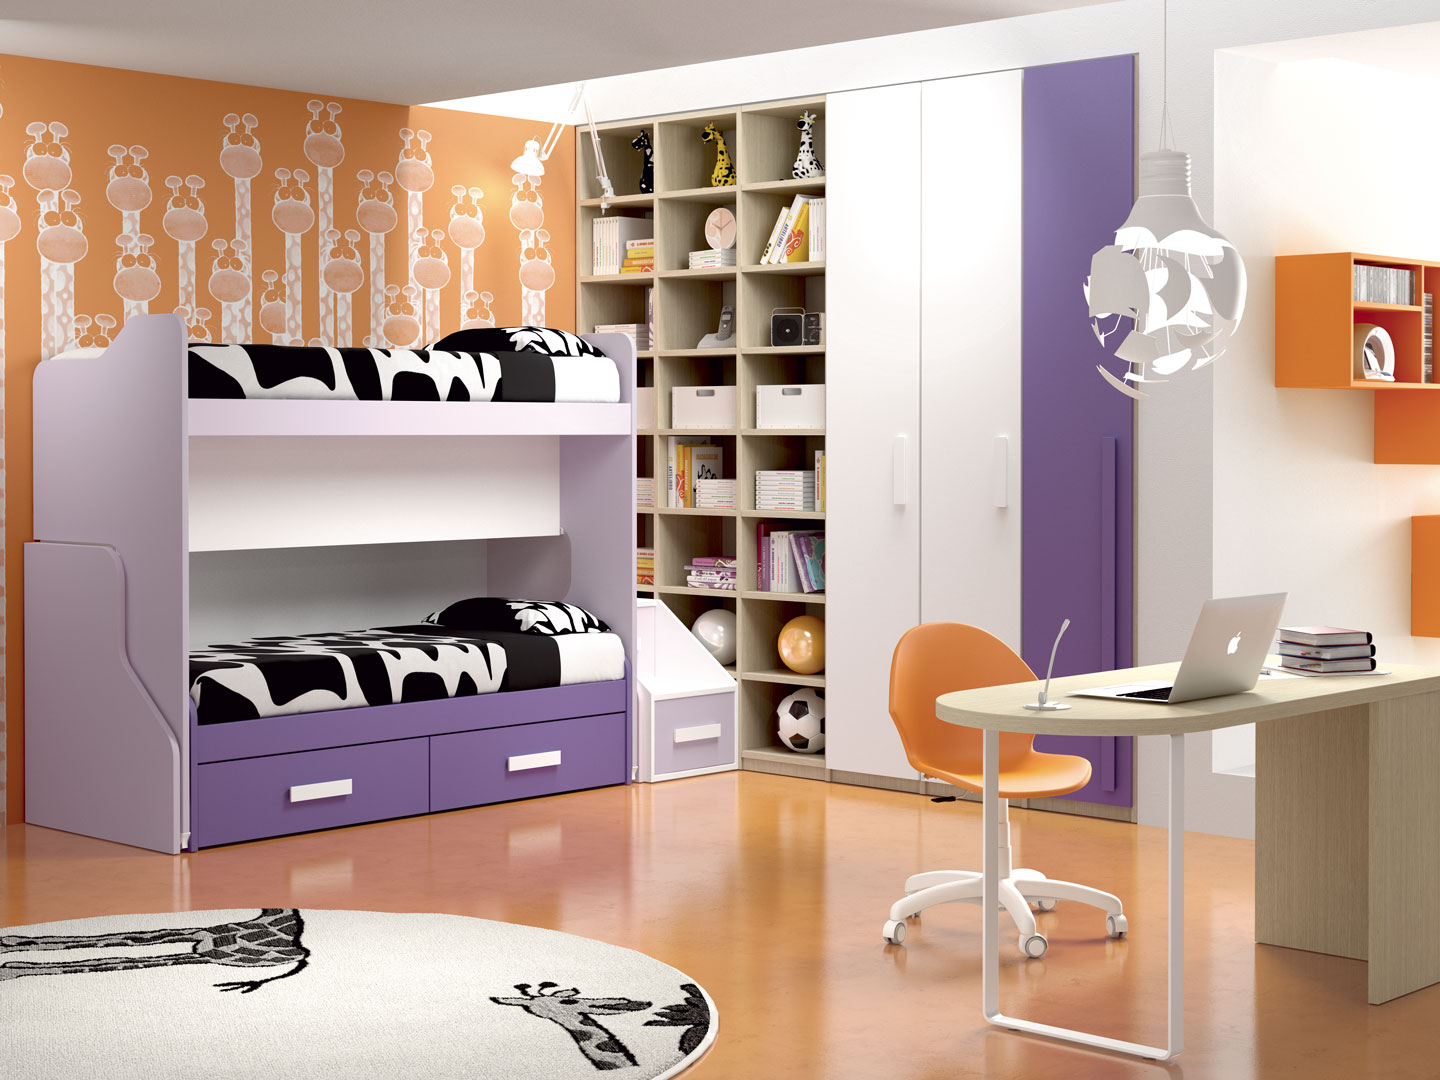 Camerette made in italy ima mobili composizione 9 newformsdesign camerette newformsdesign - Mobili made in italy ...